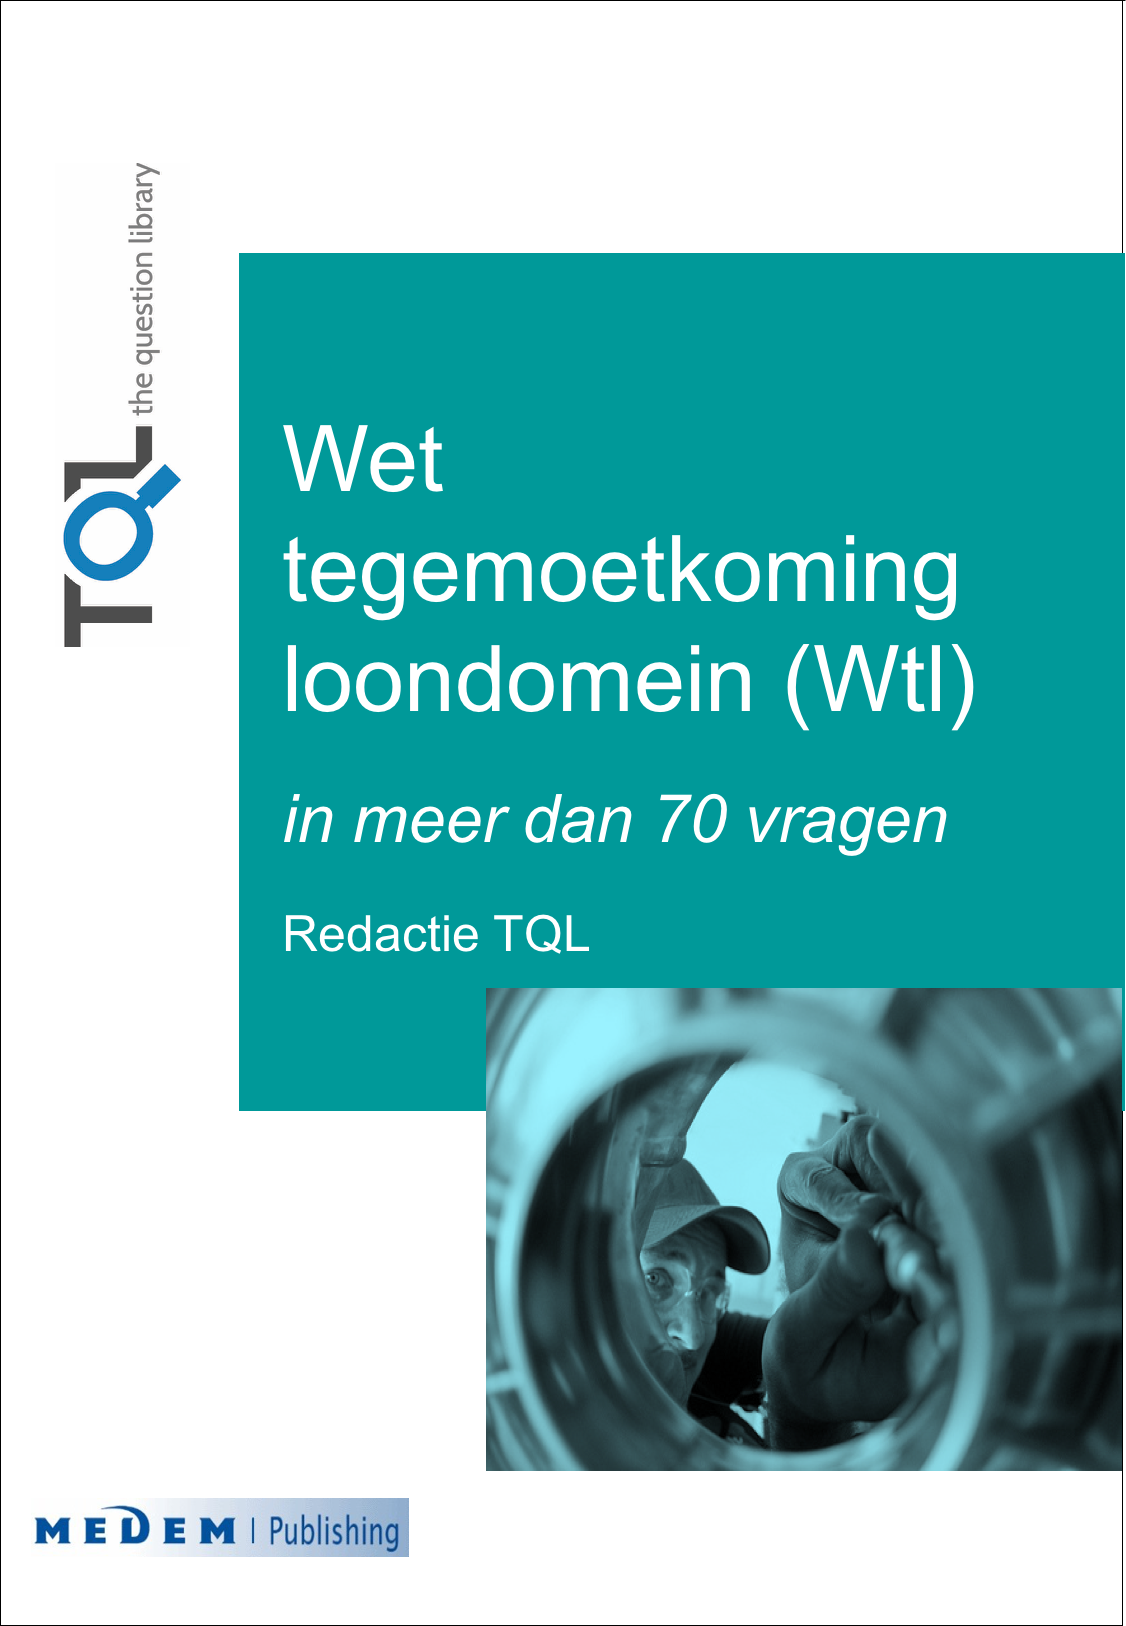 Wet tegemoetkoming loondomein (Wtl)